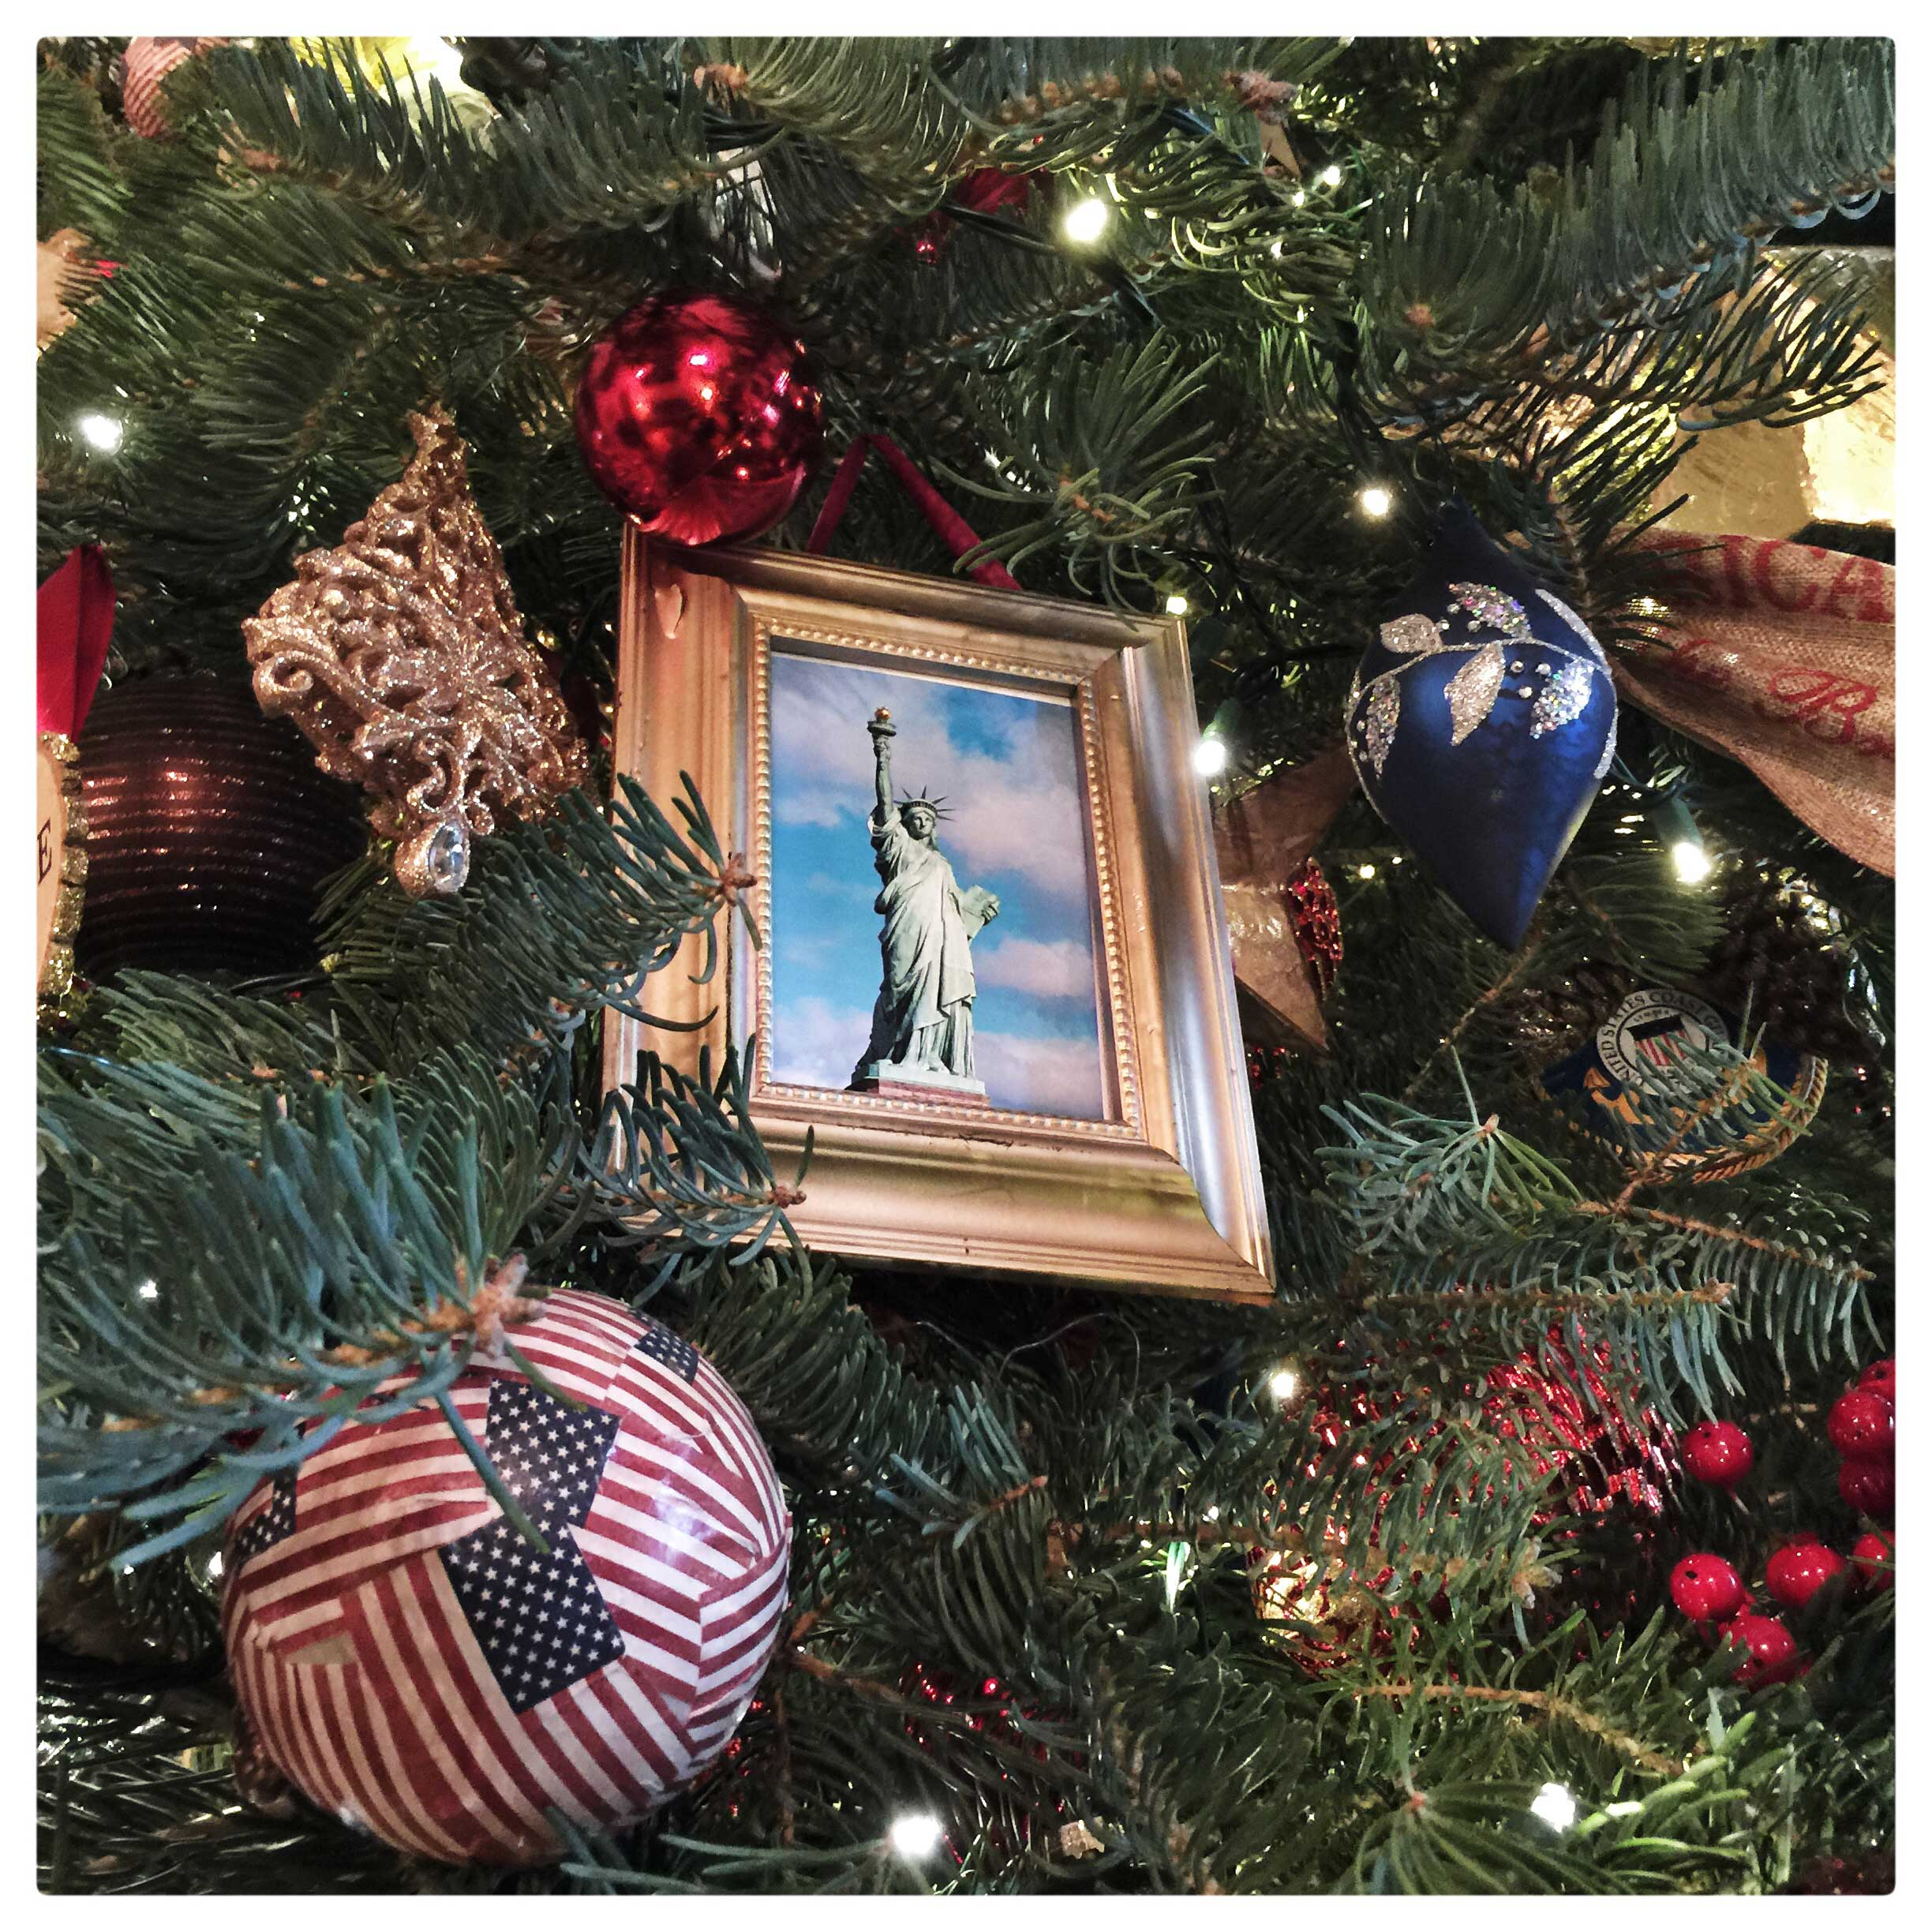 The official White House Christmas tree in the Blue Room at the White House. The 18 foot tree has over 2000 ornaments.